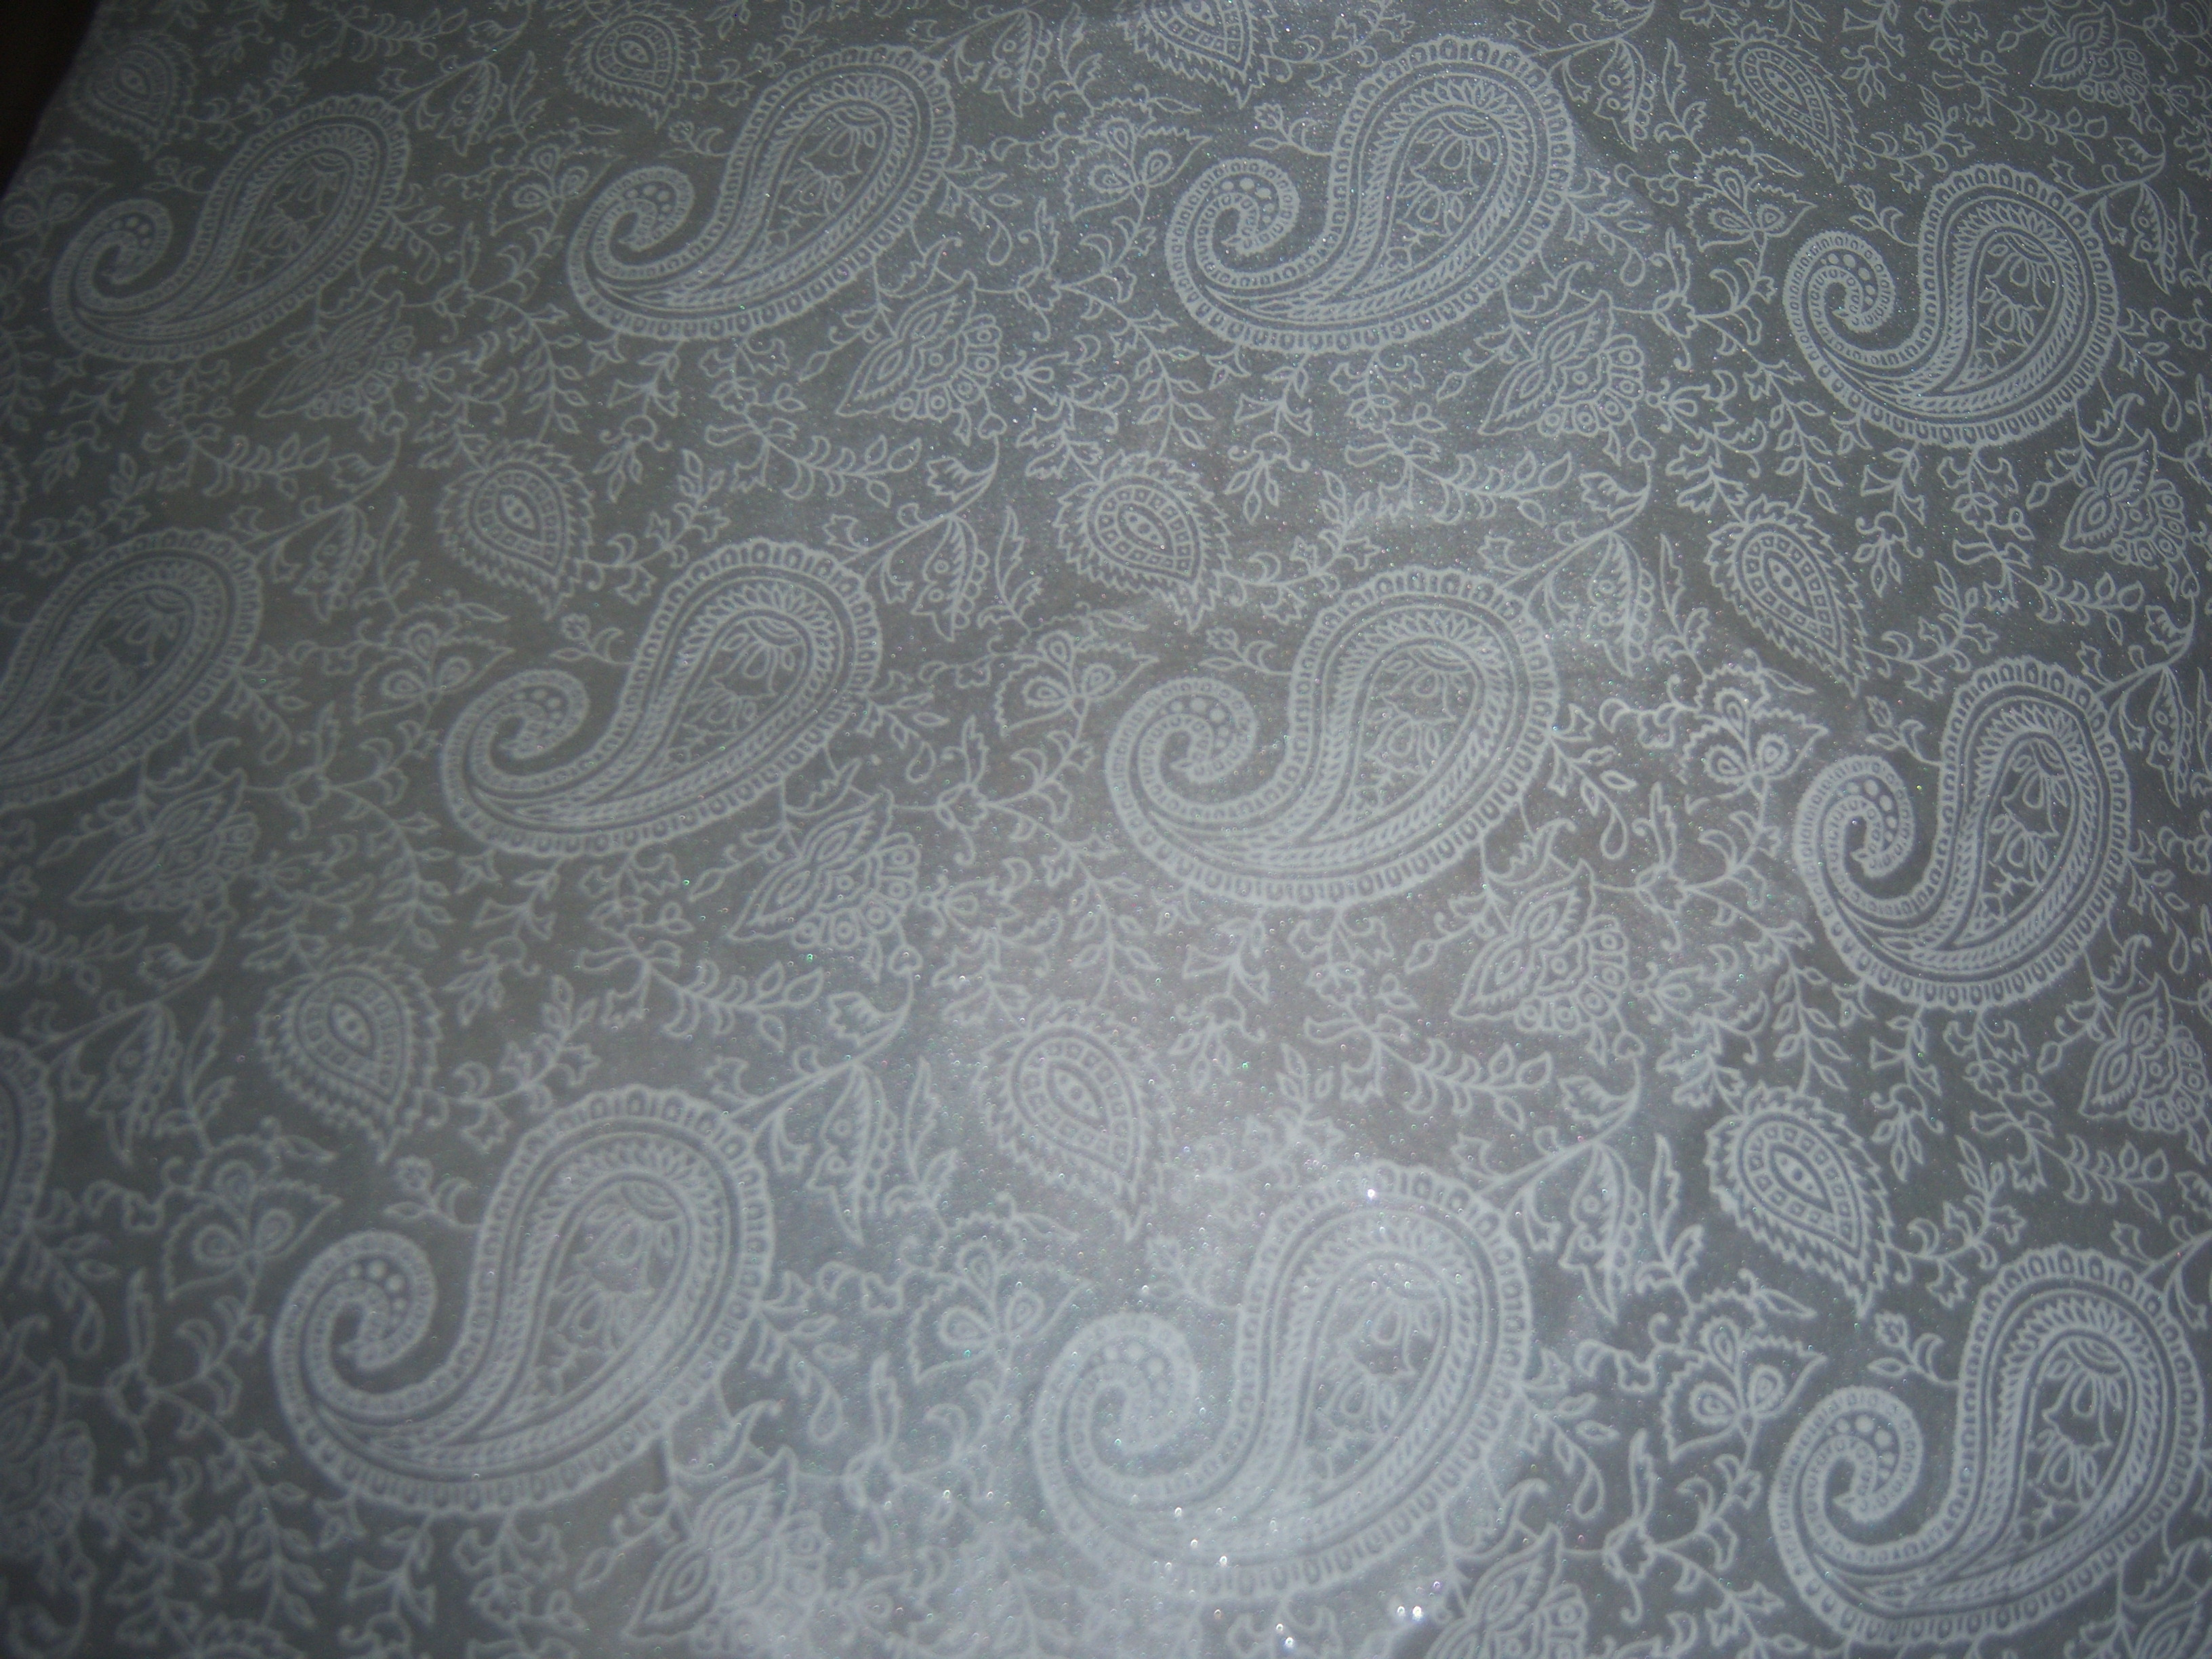 Texture Of Handmade Paper Stock Images - Image: 30777944